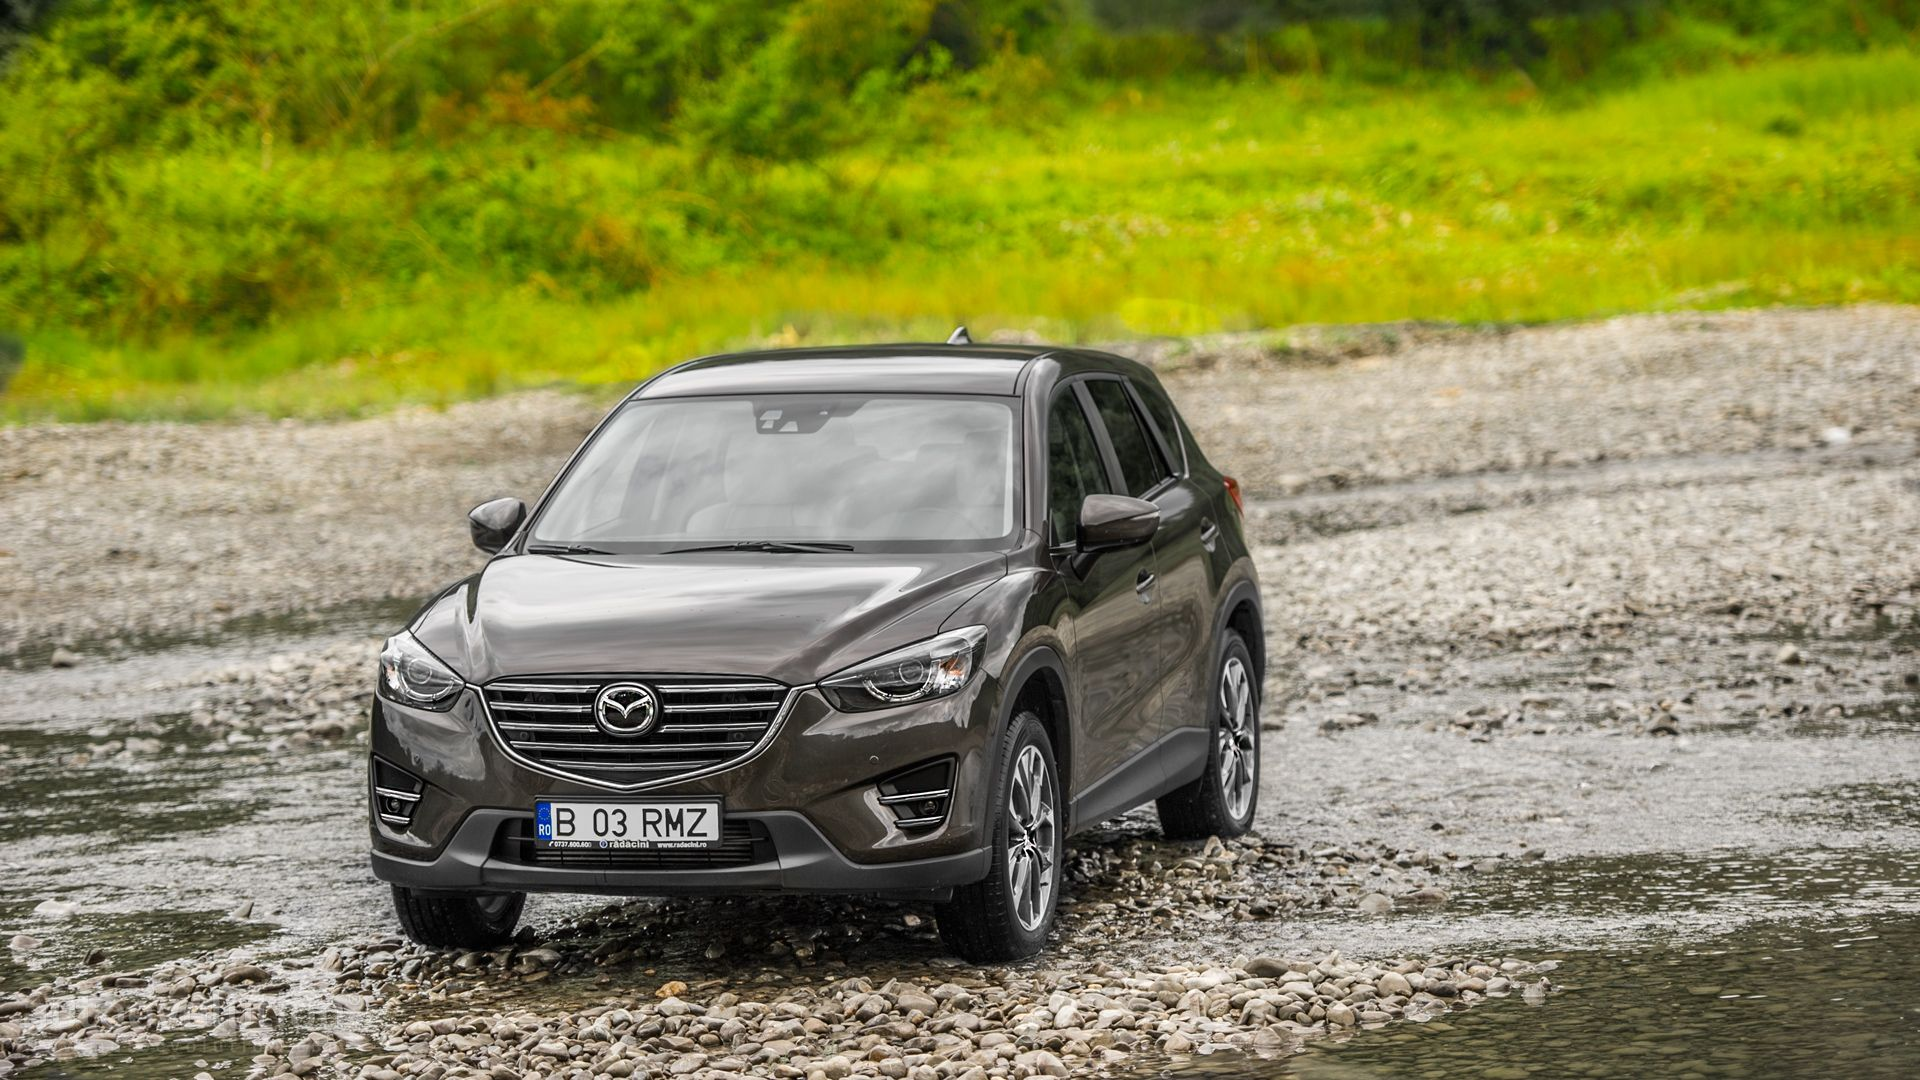 1920x1080 - Mazda CX-5 Wallpapers 24